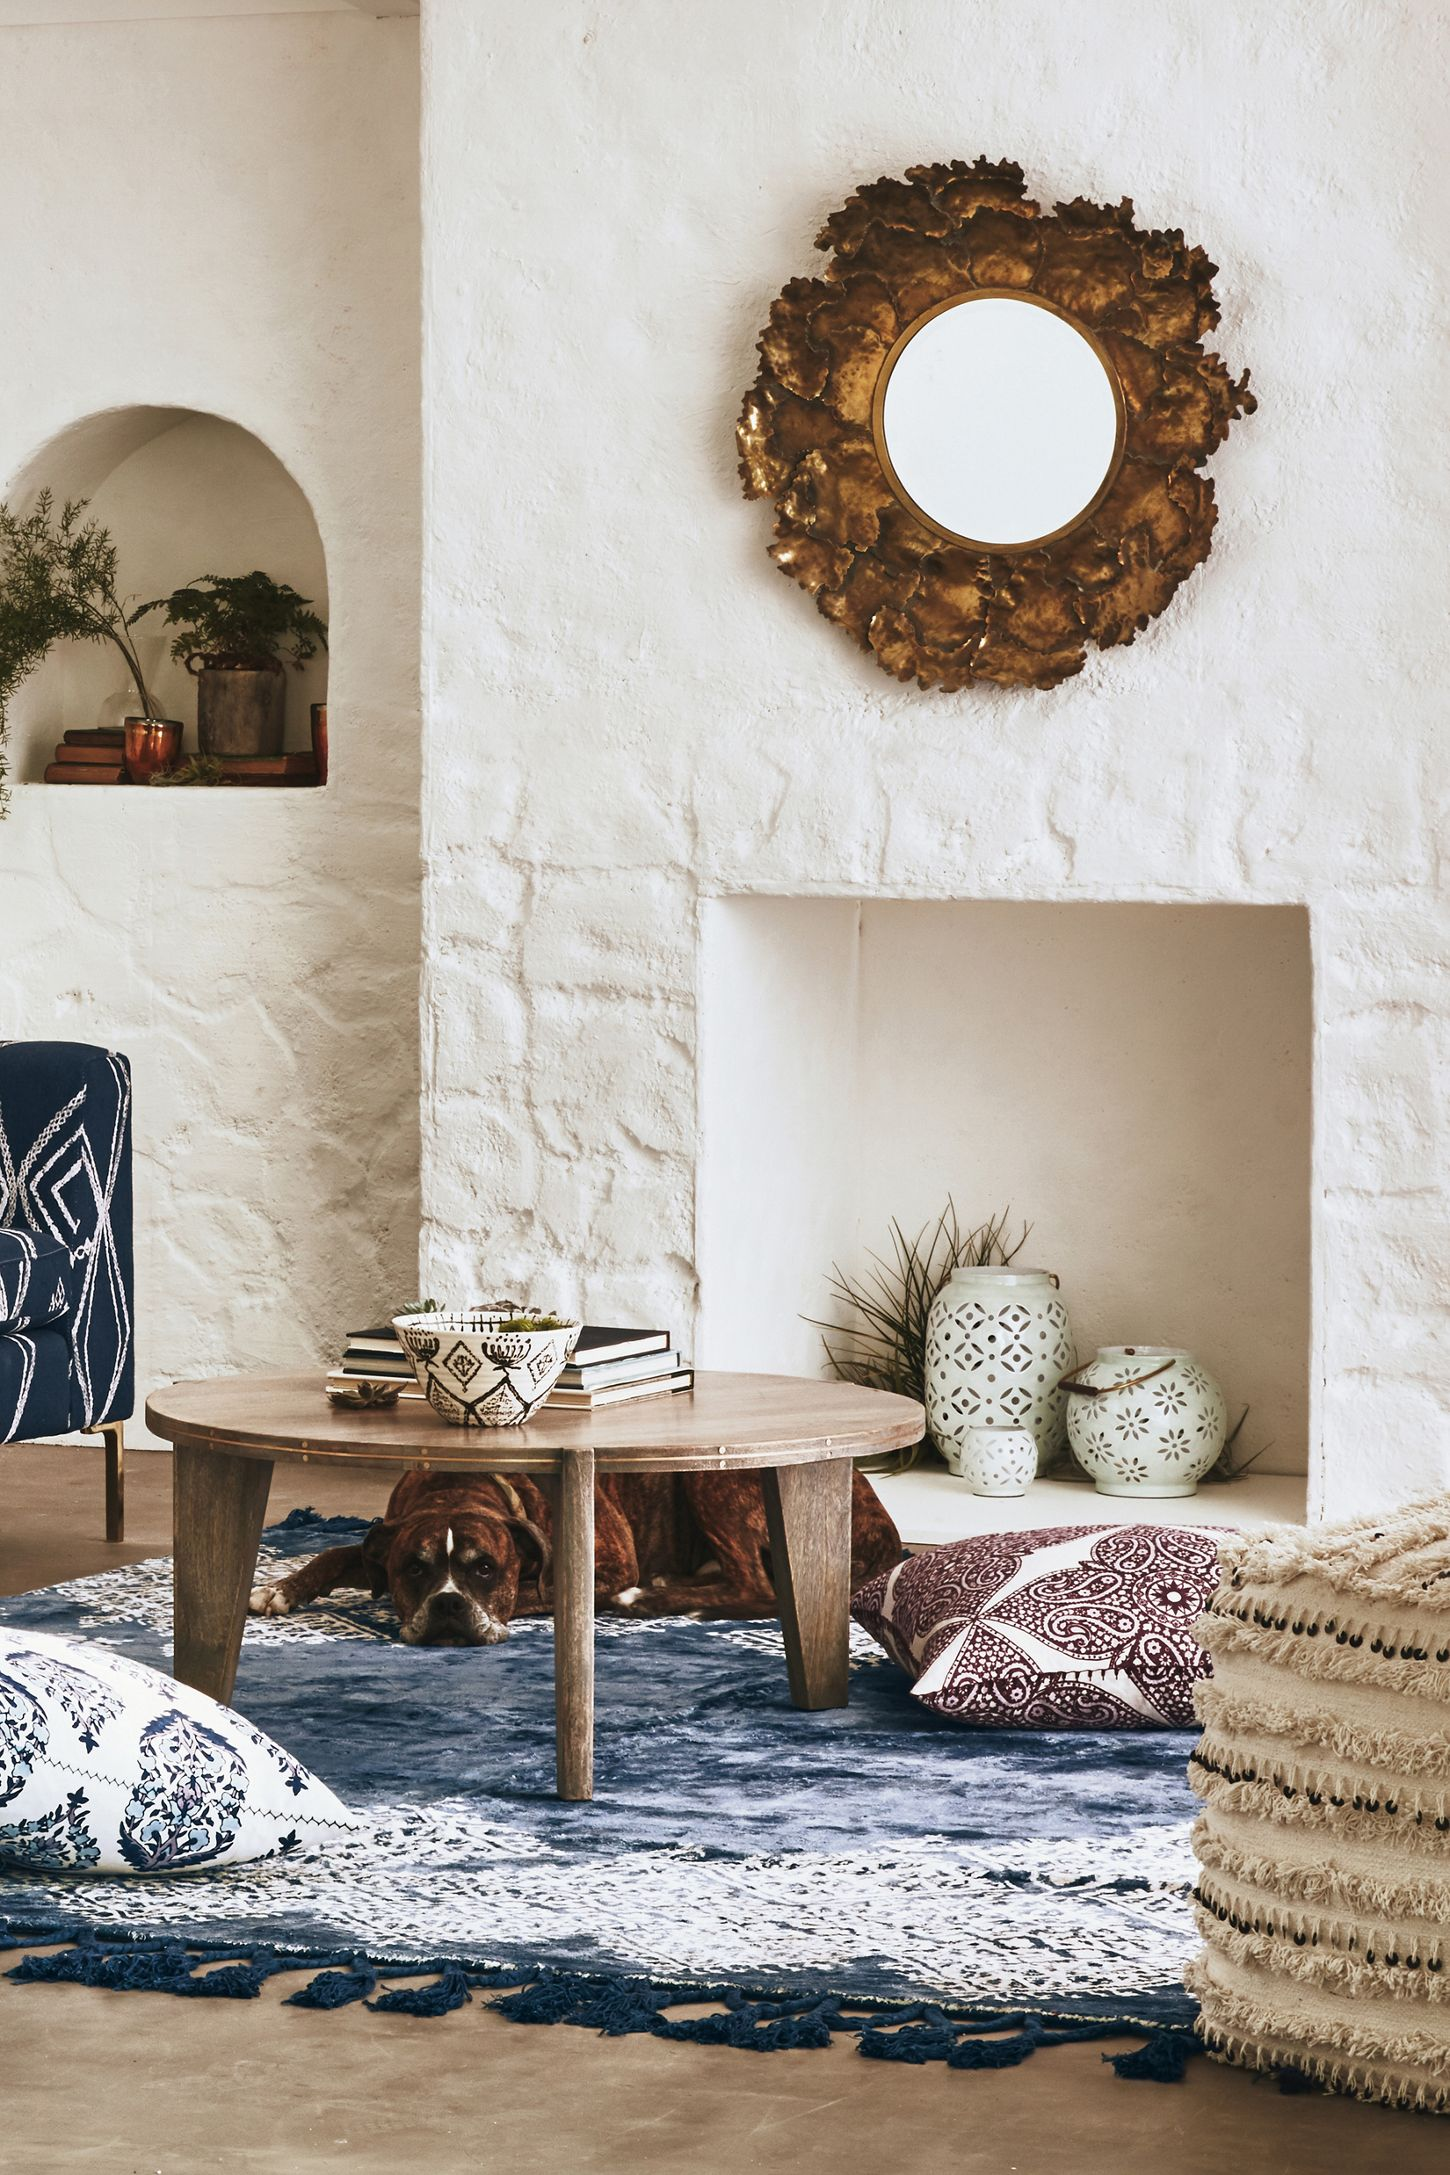 Autumn Leaf Mirror | Anthropologie